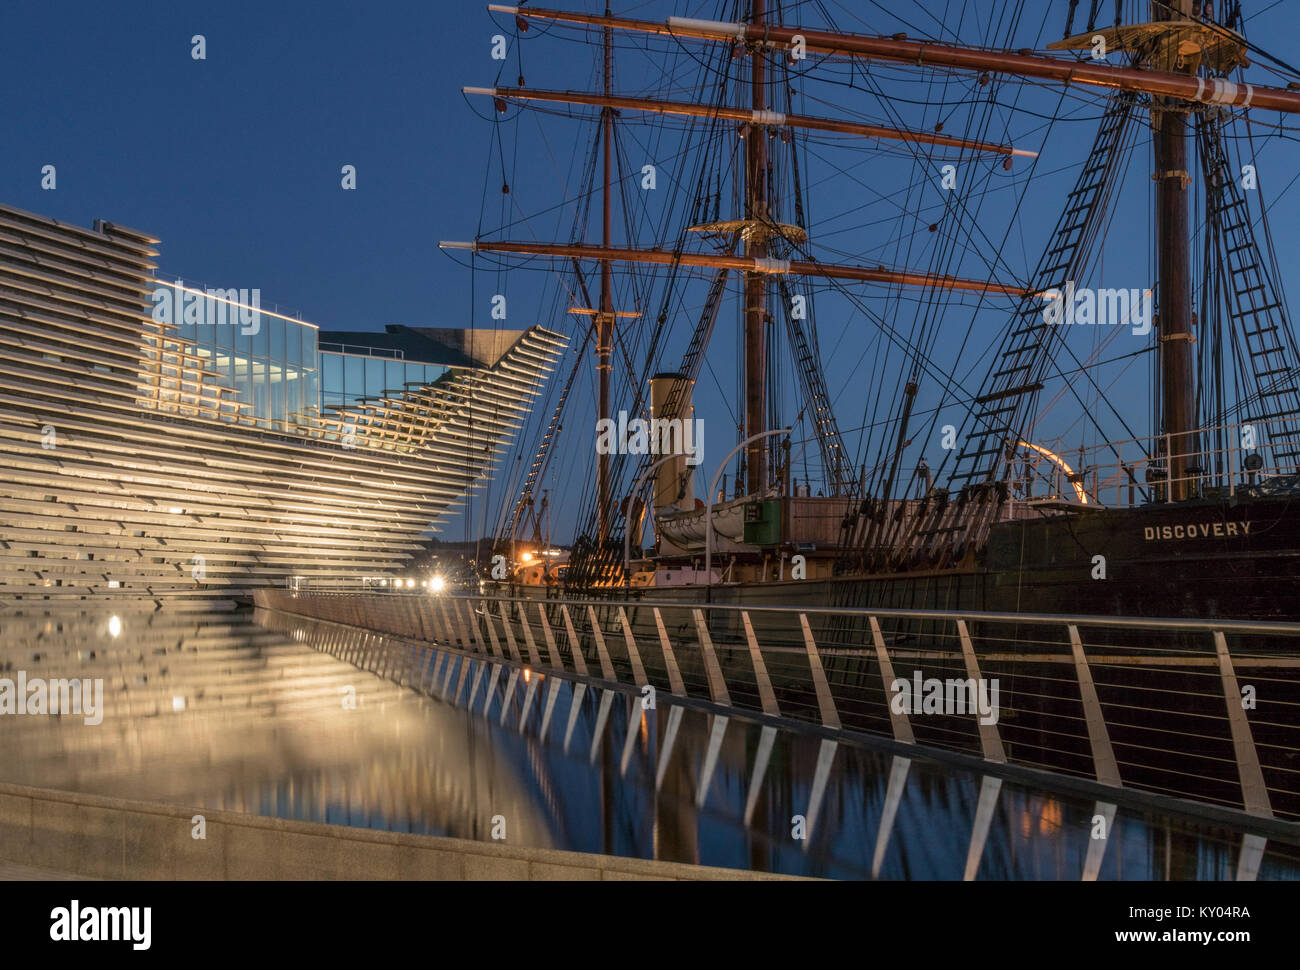 The V&A design museum has been sited next to the RRS Discovery as part of the waterfront development scheme - Stock Image